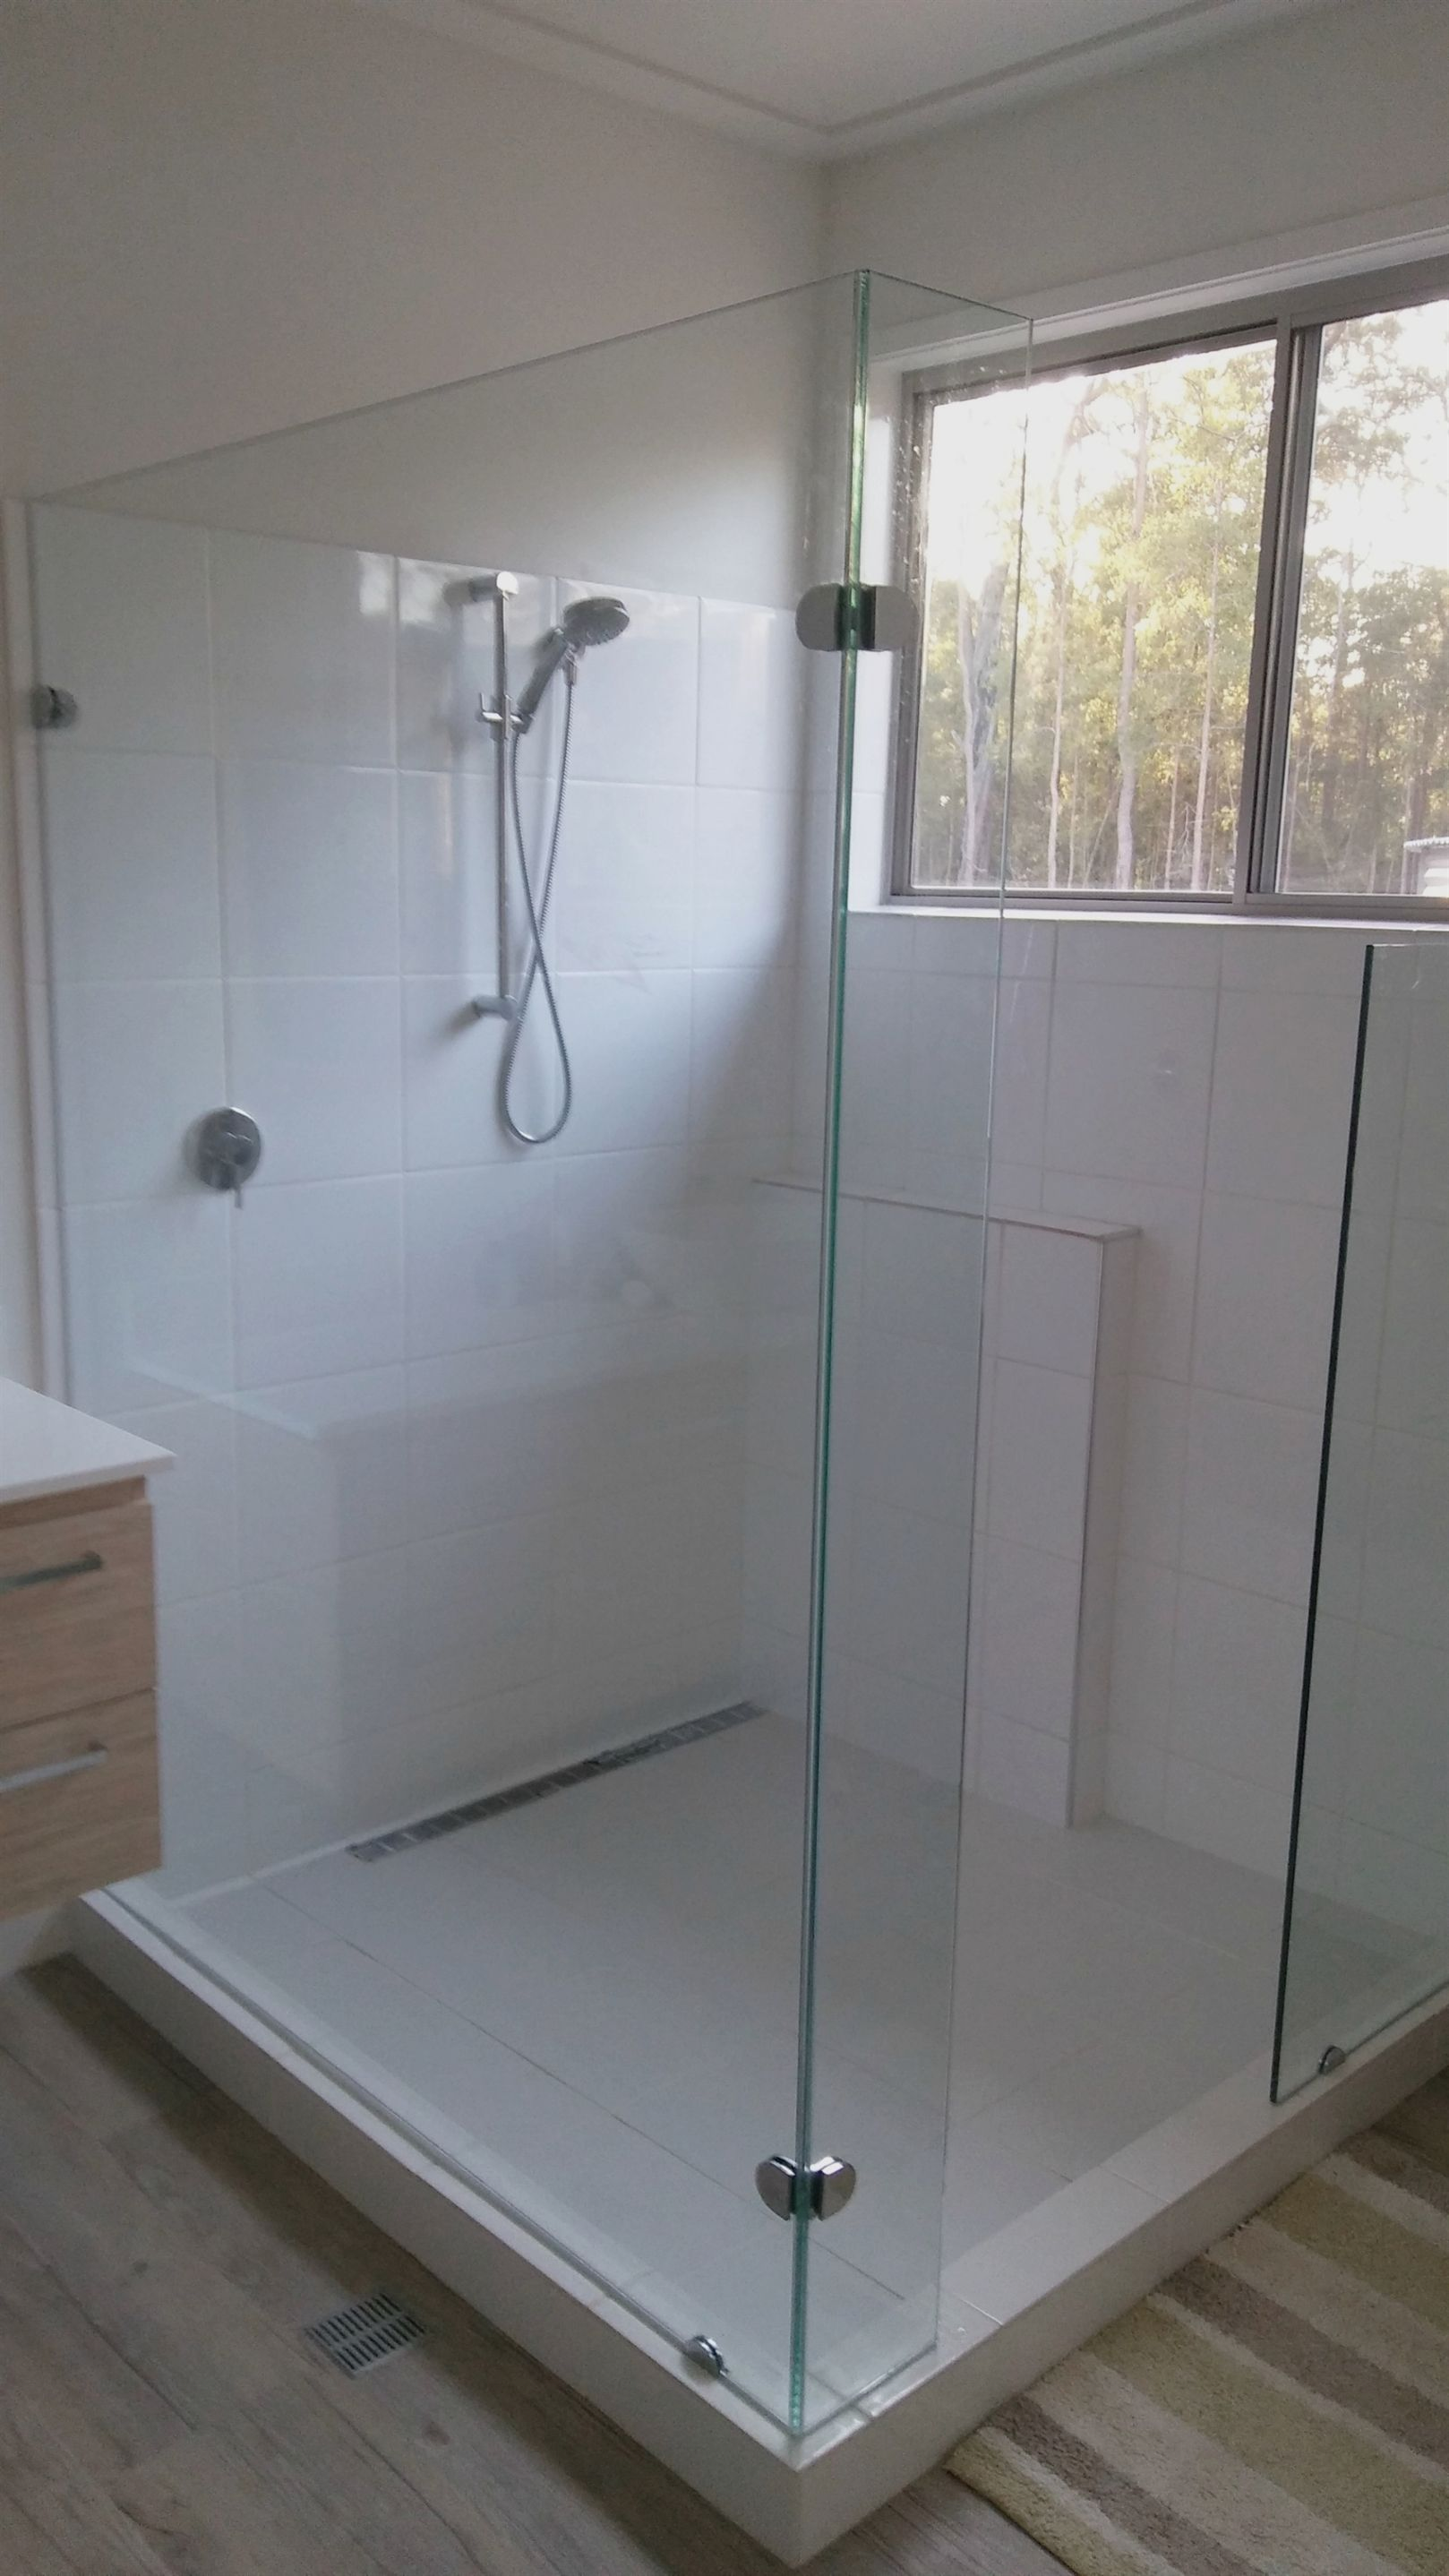 10 Tips To Revamp Your Bathroom At A Low Price With Images